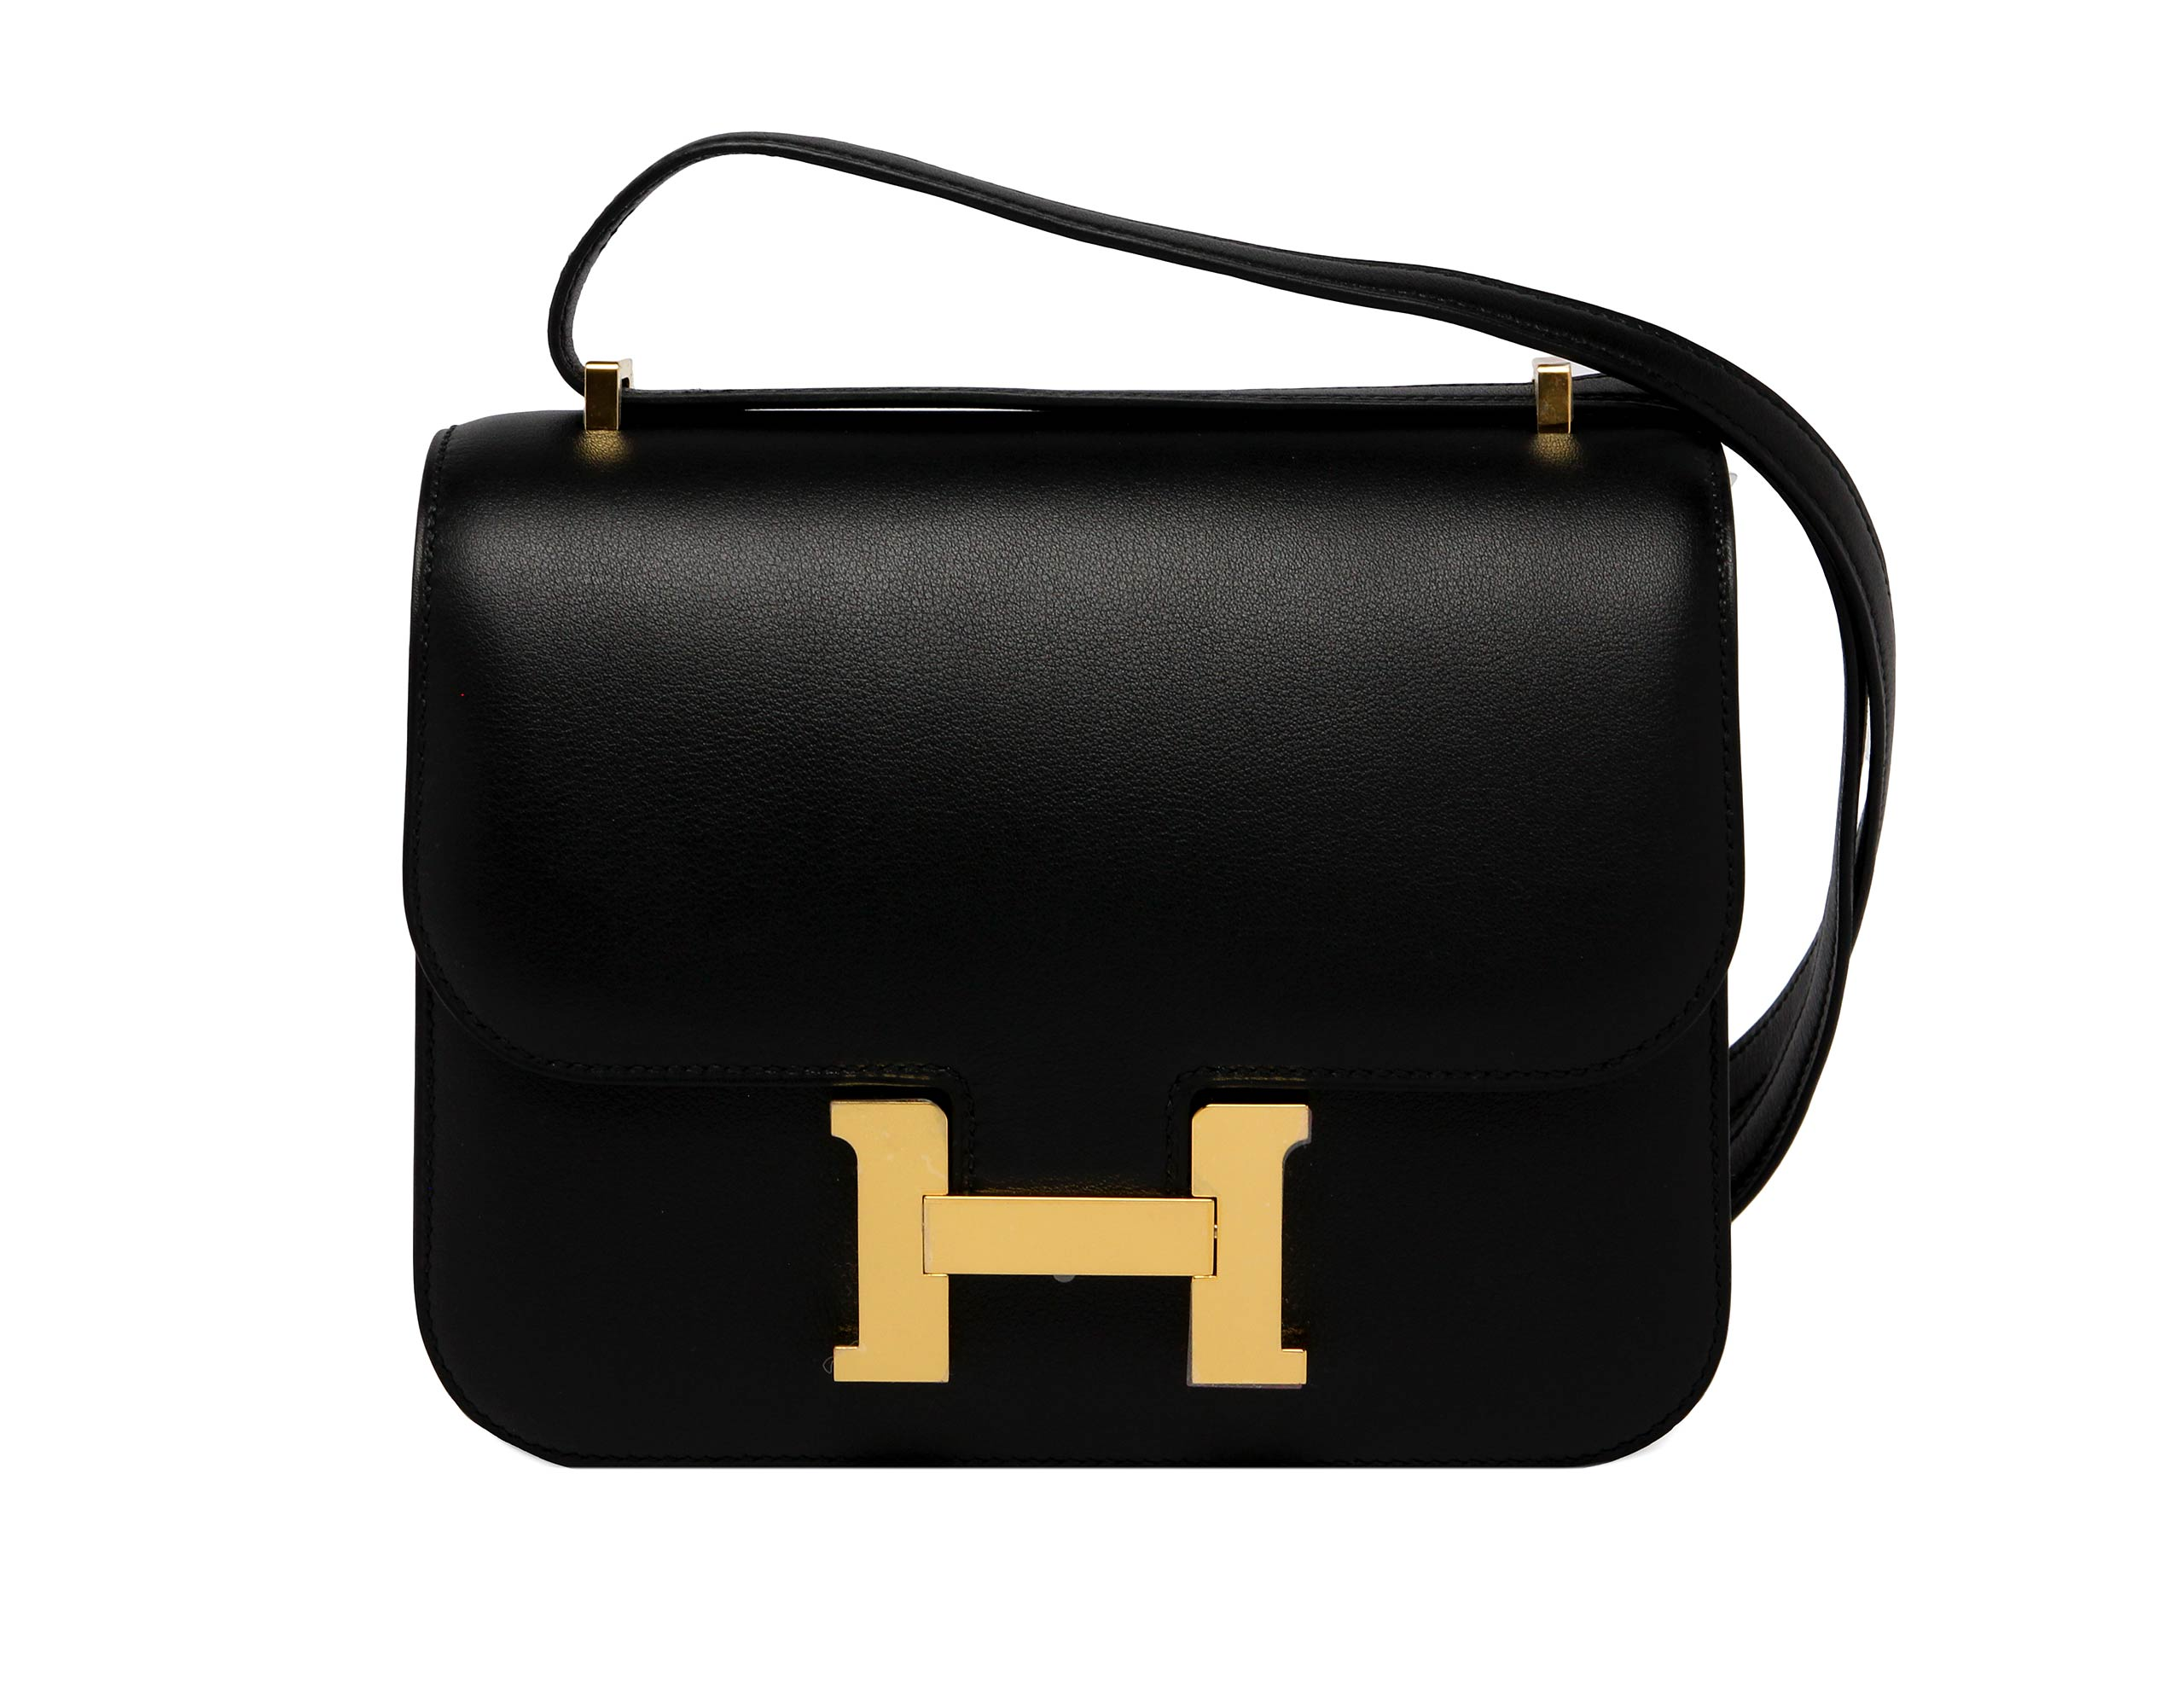 Hermes Handbags Black